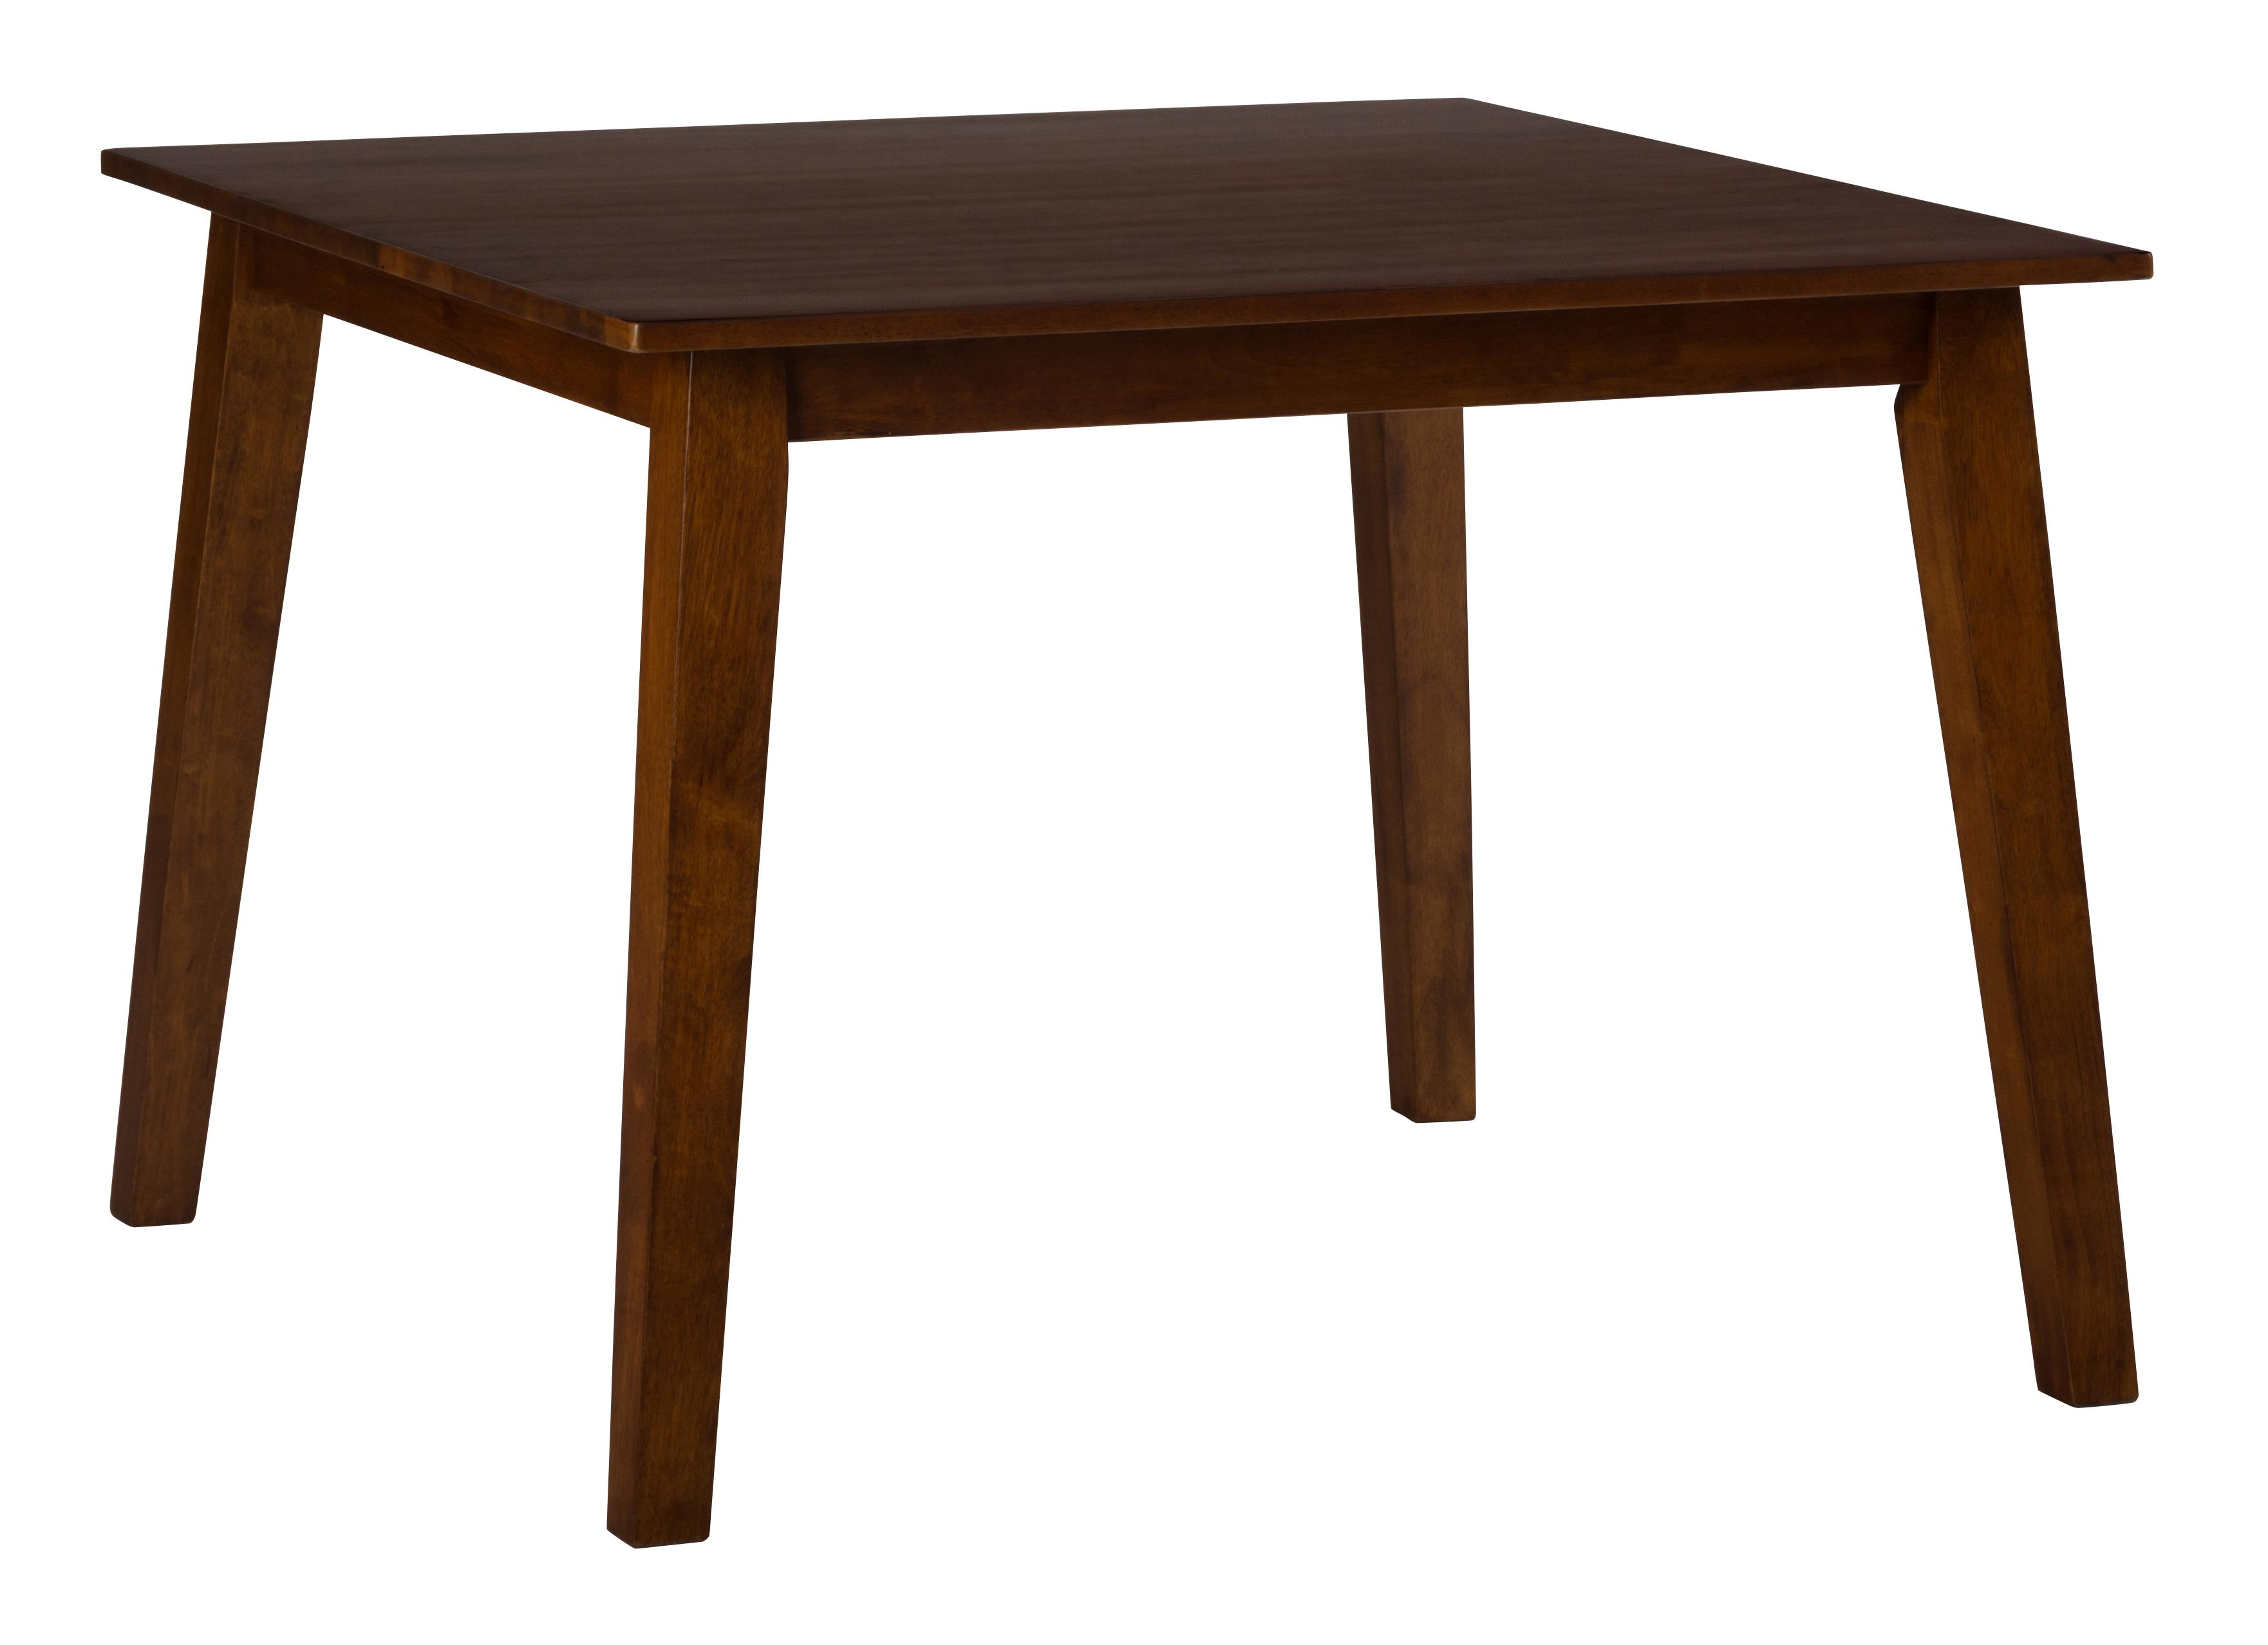 Home Design Outlet Center Hours 3x3x3 Caramel Square Dining Table That Seats 4